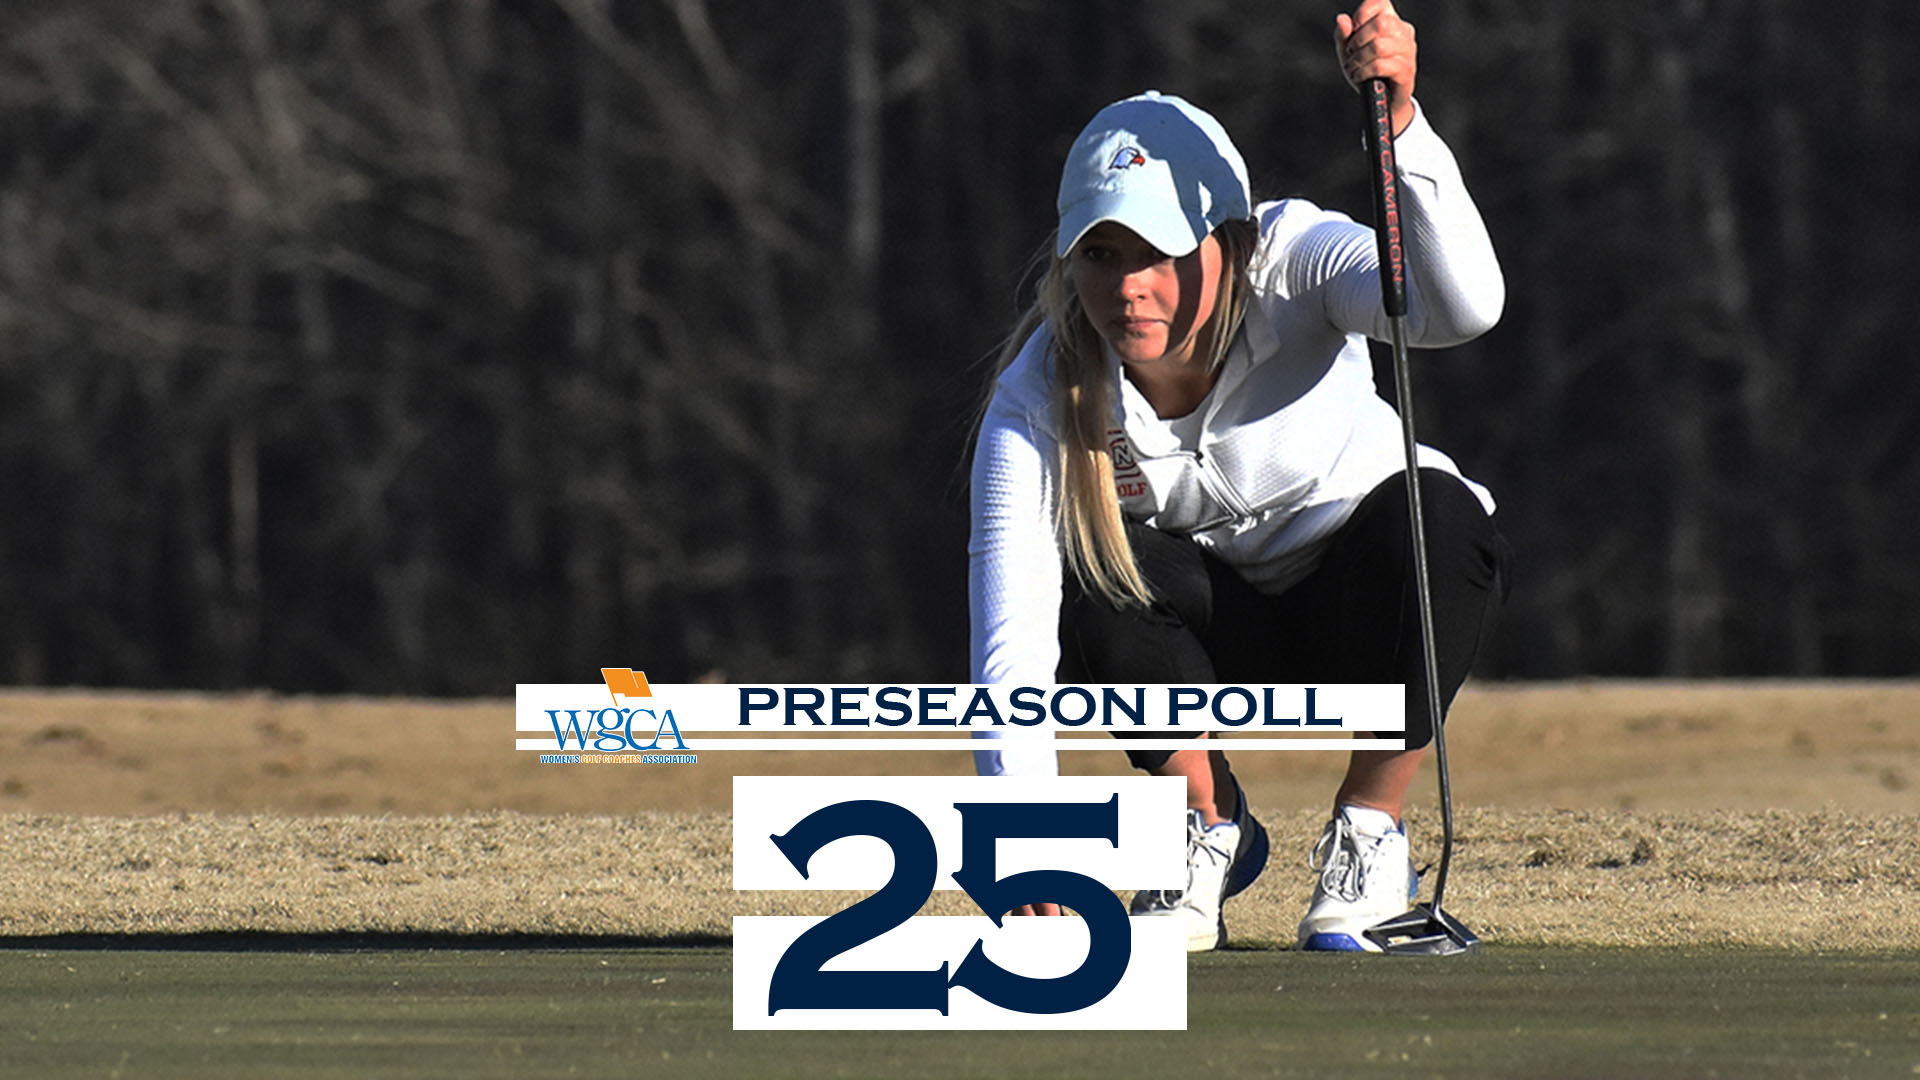 Eagles debut in WGCA Preseason Poll tied for 25th